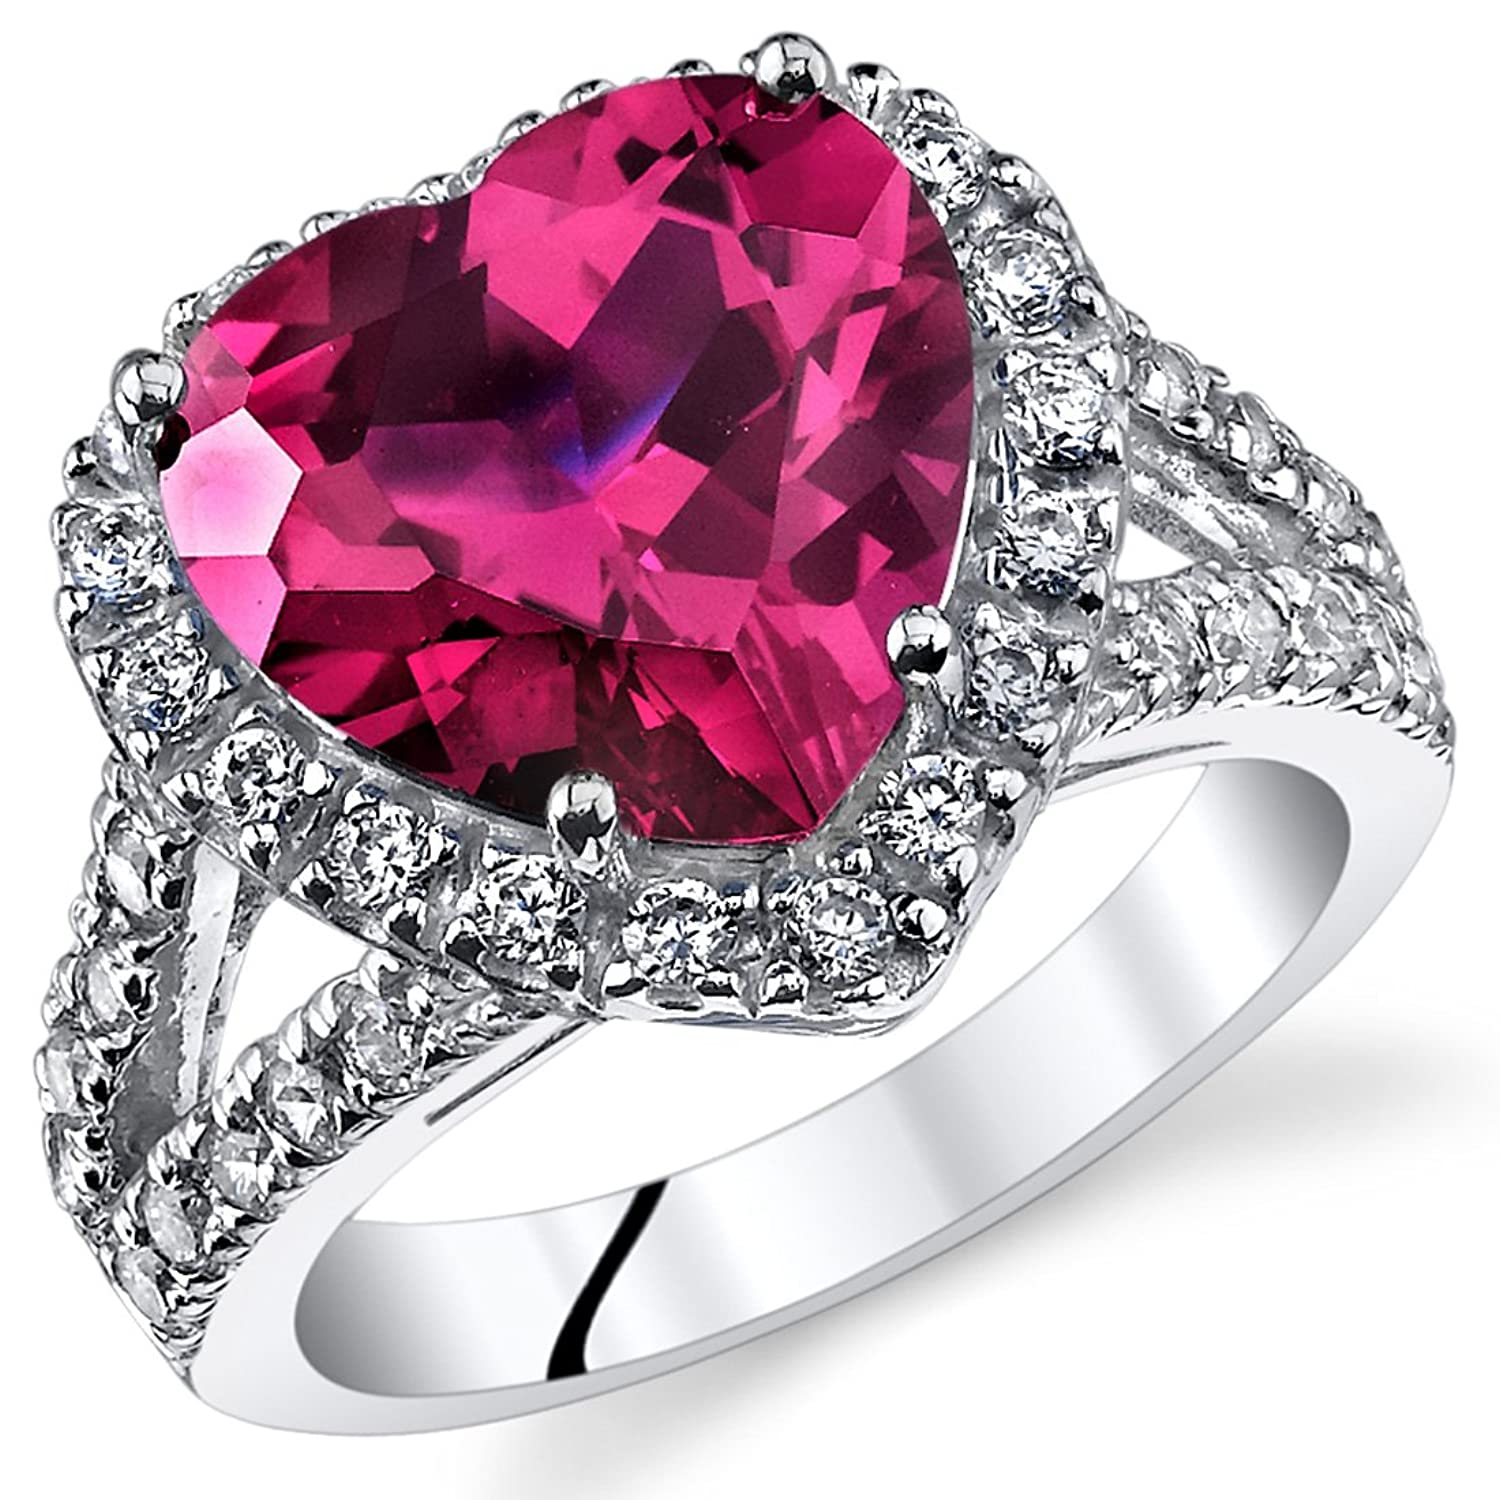 shop ring diamond buy promise rings online best the with india jewellery shape heart rates shaped